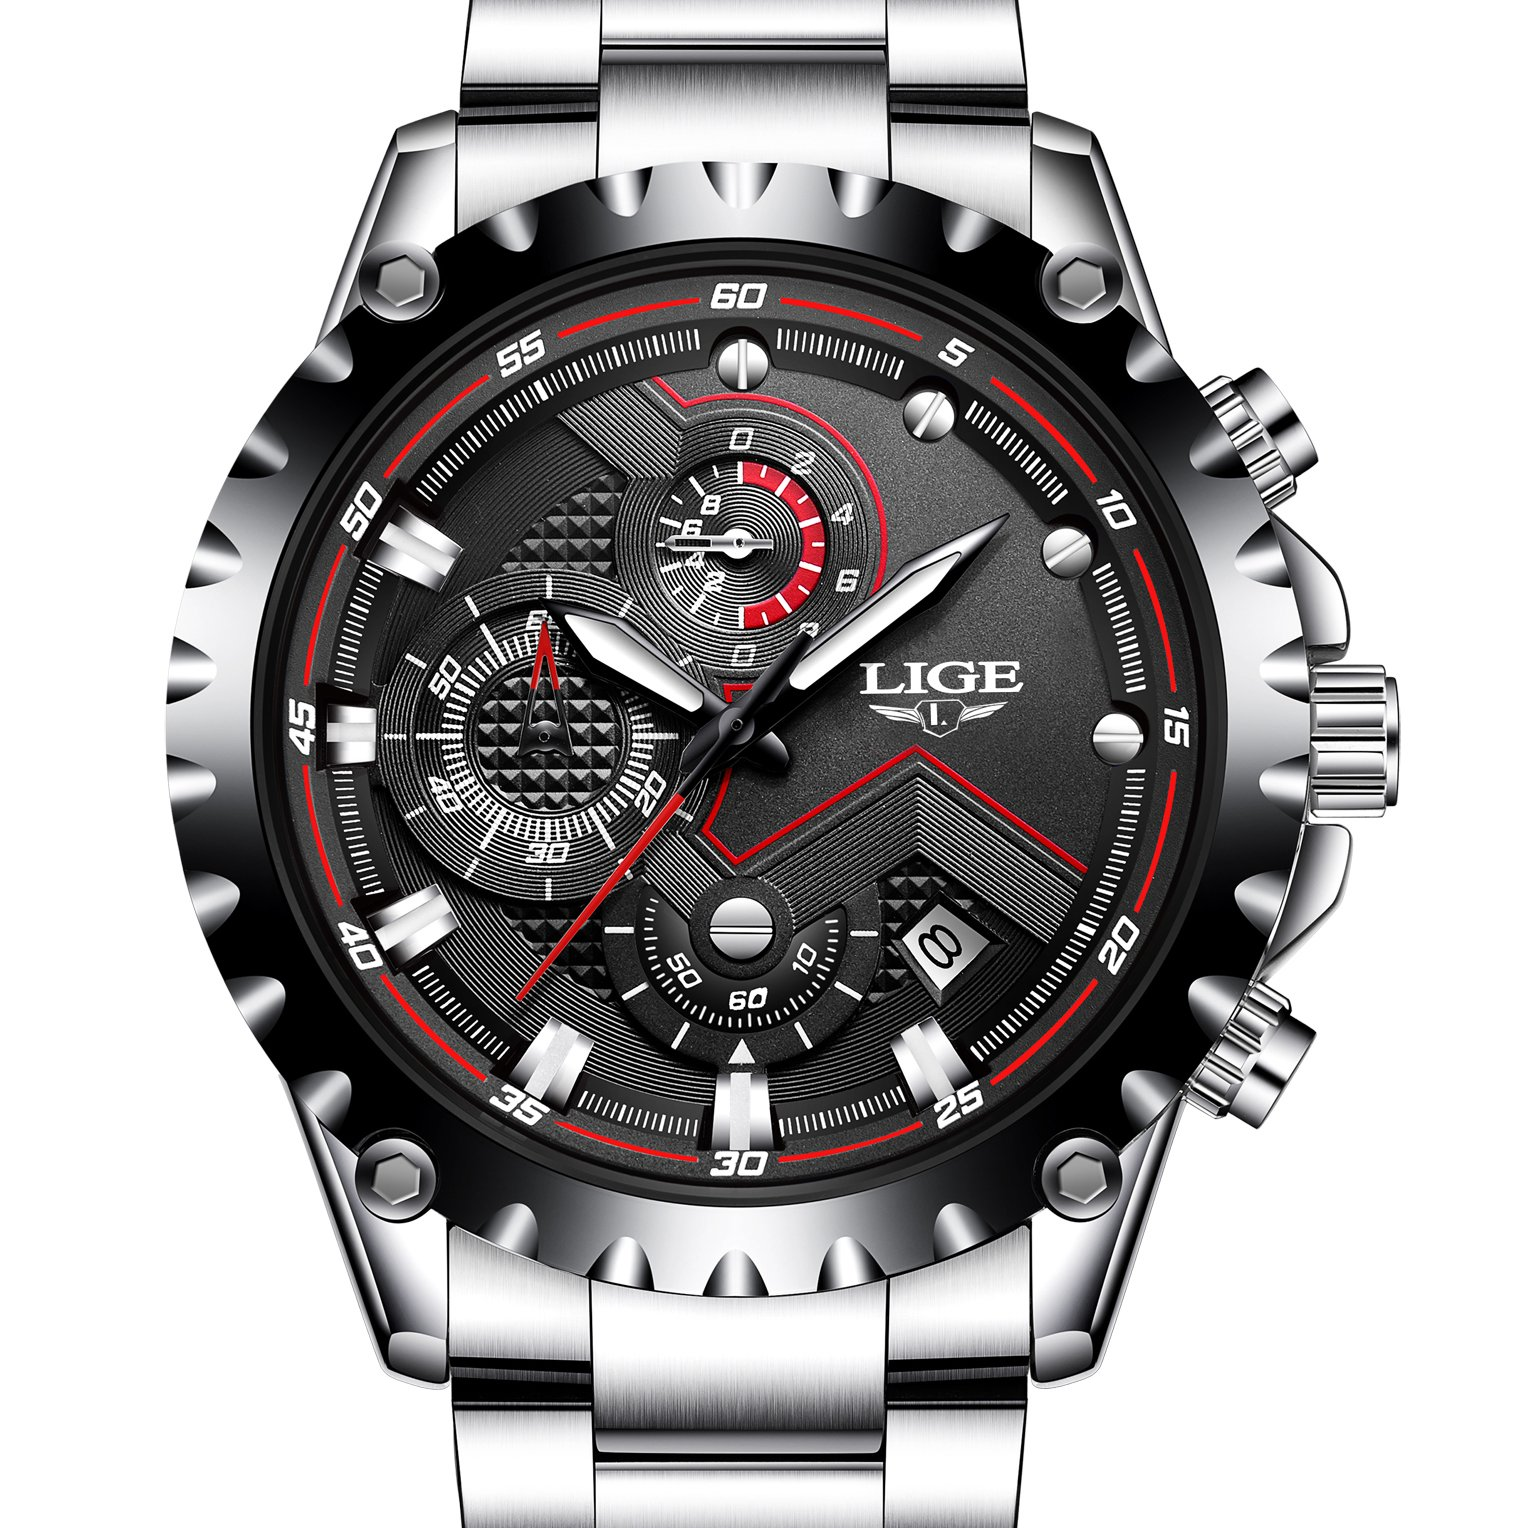 Mens Sport Fashion Chronograph Analog Quartz Wrist Watches Date Stainless Steel Band,Silver Black by Affute